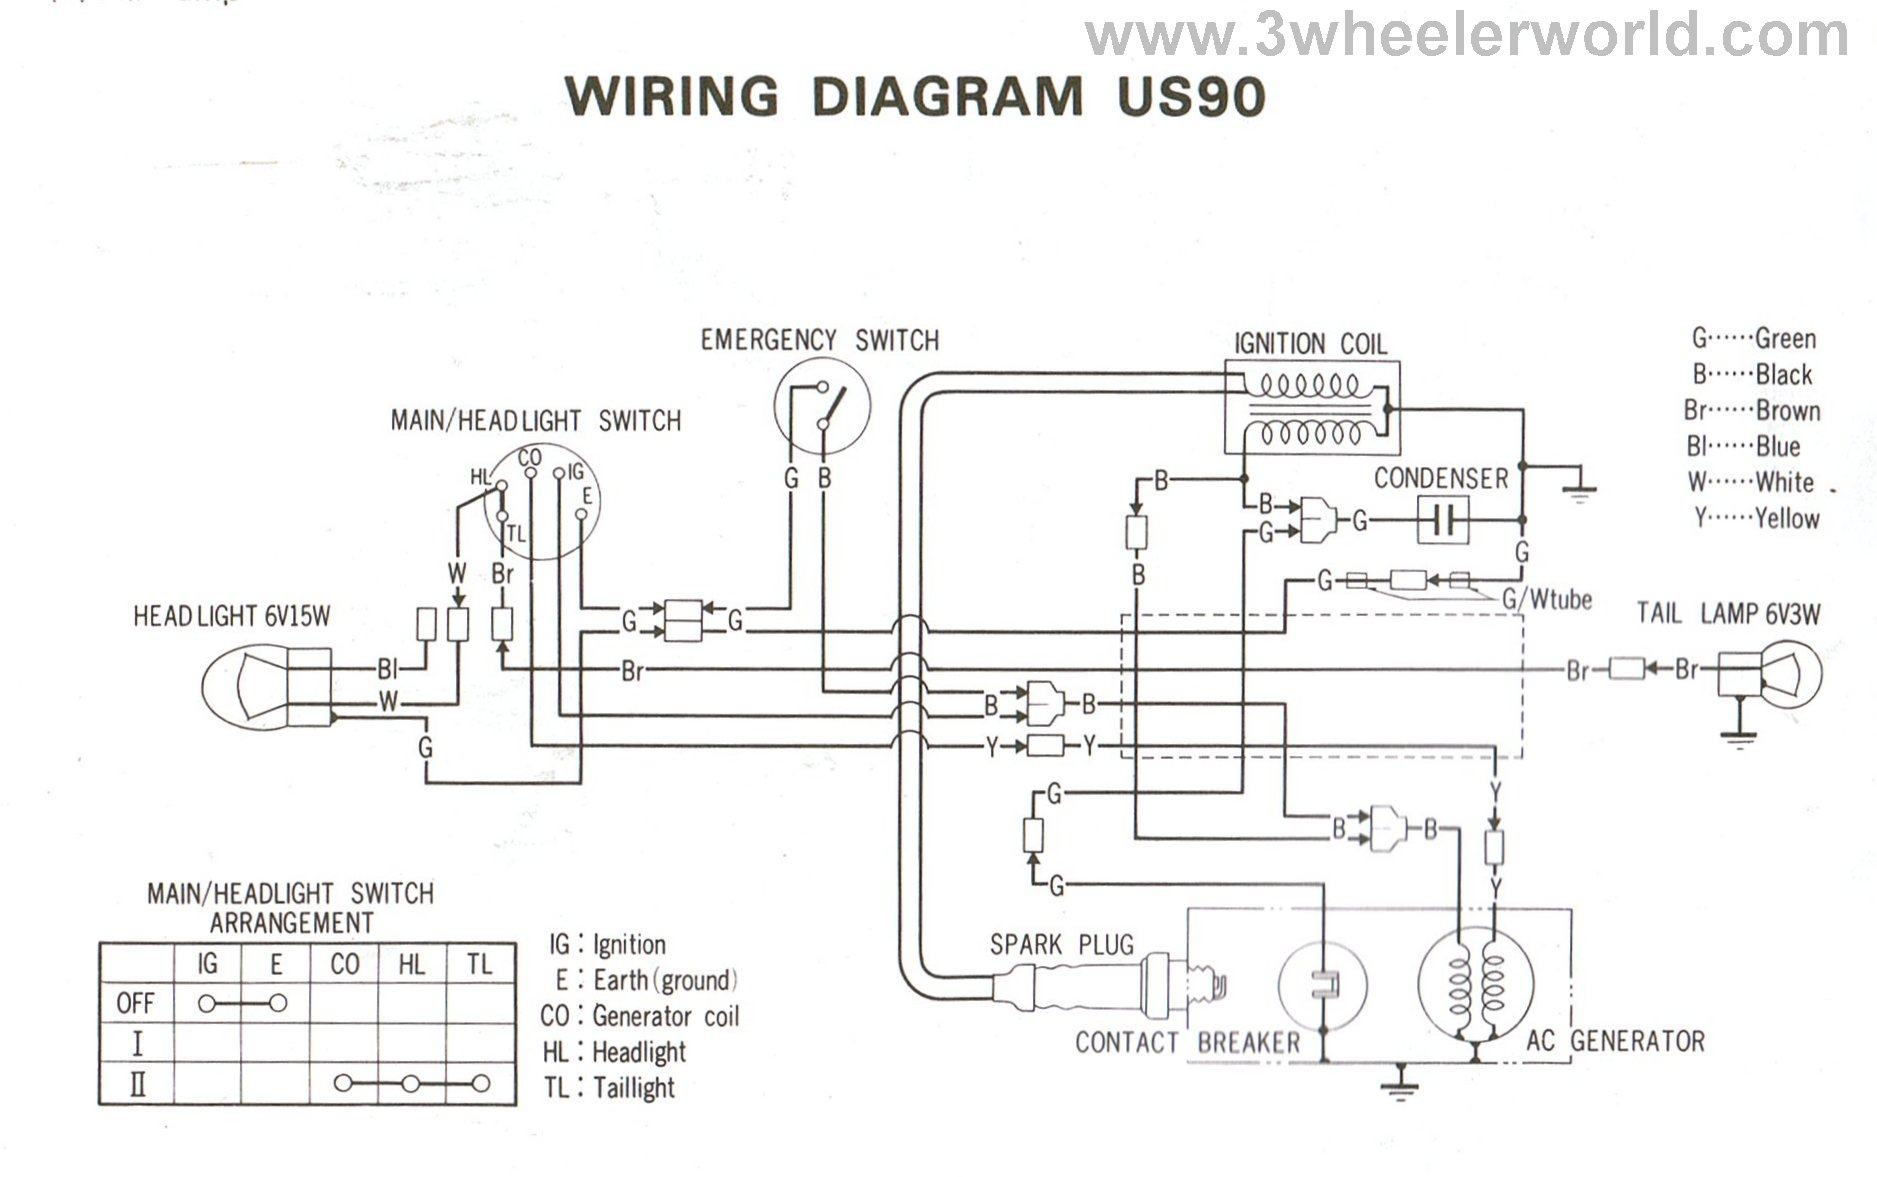 US90HM www 3wheelerworld com oldsite files wiring us90hm jpg polaris scrambler 90 wiring diagram at bakdesigns.co